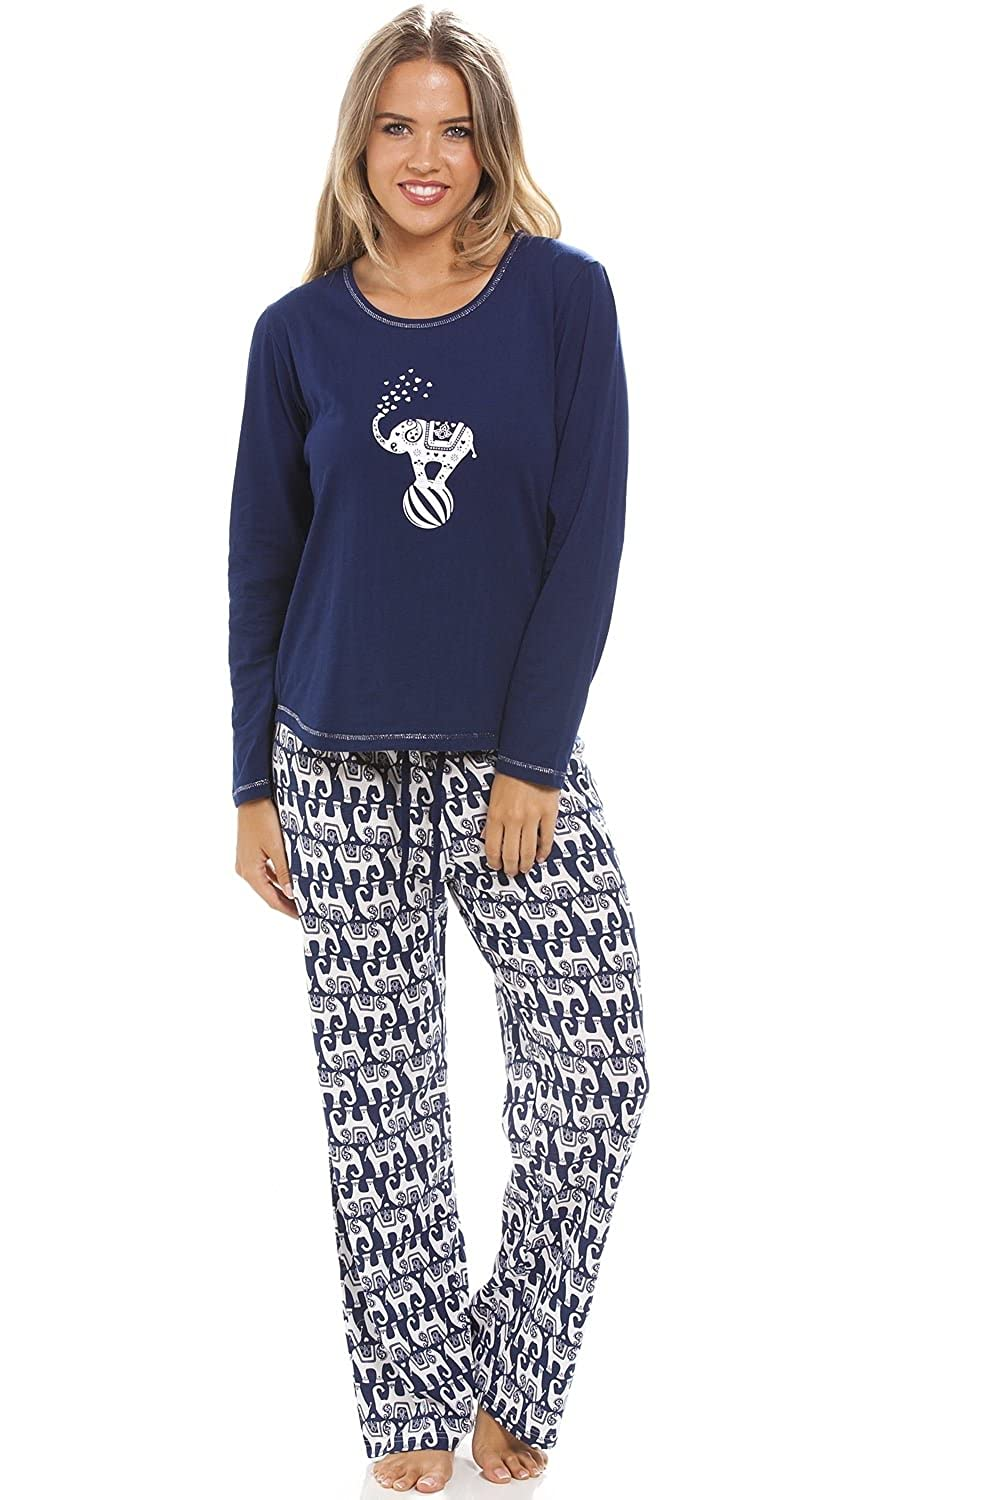 bfc9f19aaf30d Camille Womens Ladies Full Length Long Sleeve Elephant Motif Navy Blue  Pyjama Set 14 16 Blue at Amazon Women s Clothing store